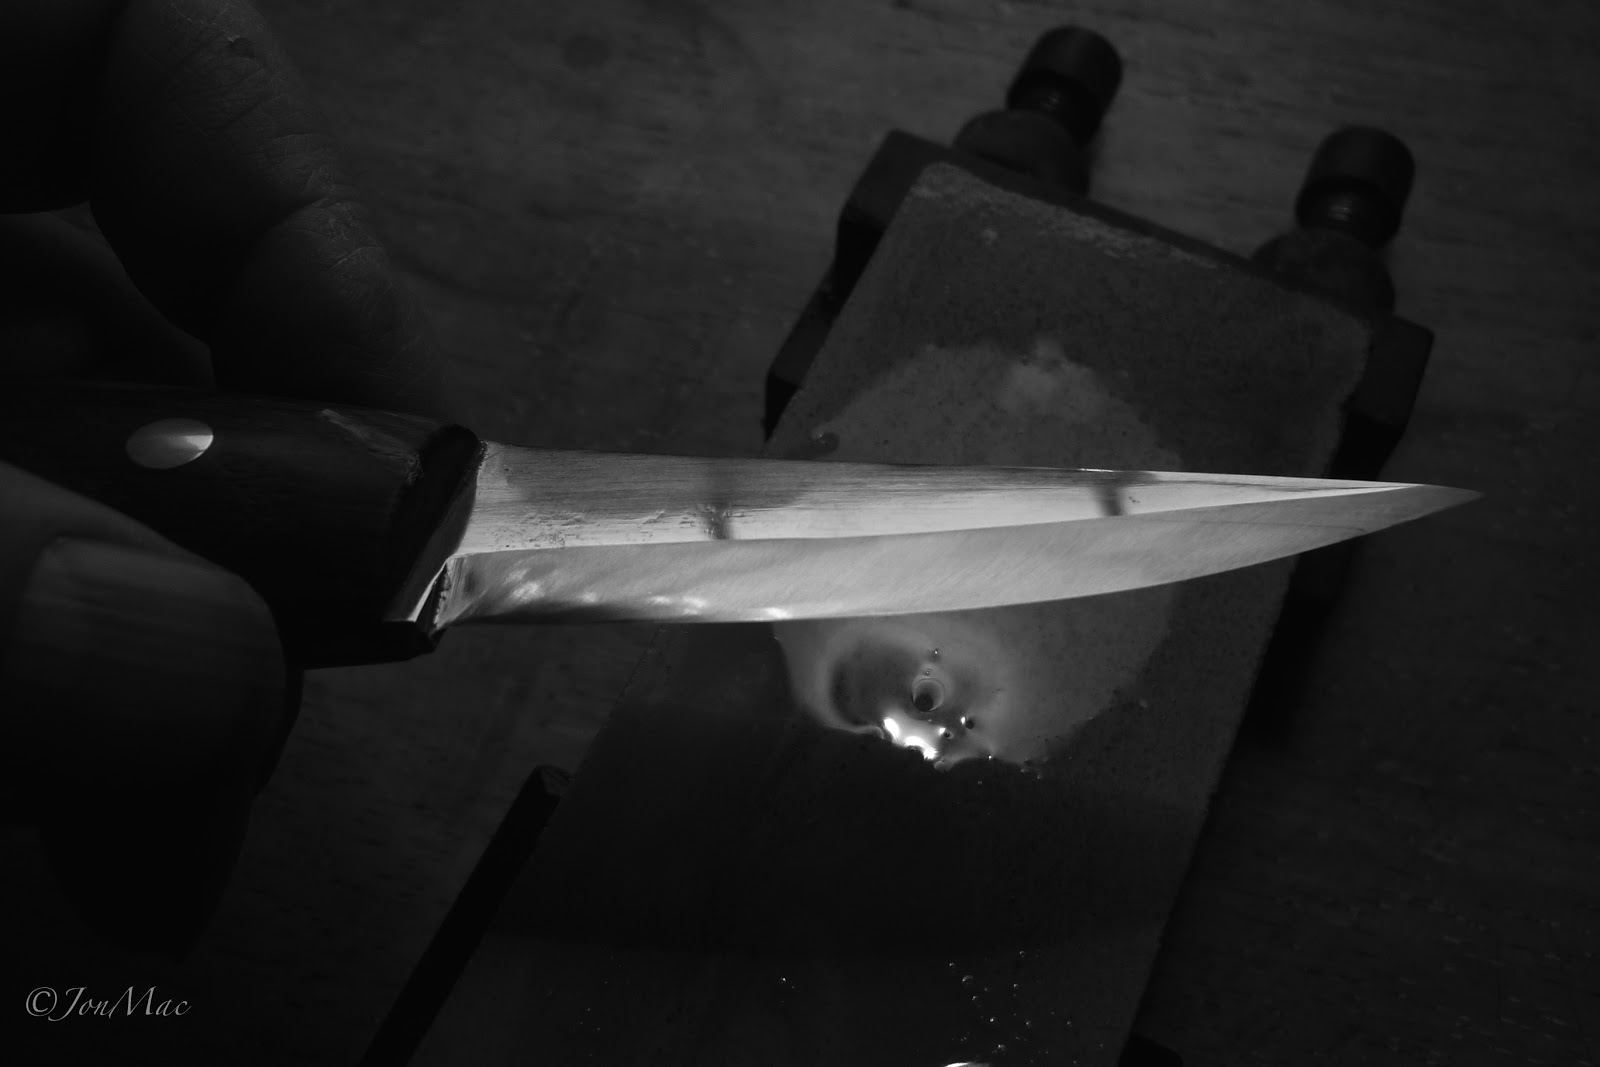 sharpening process+spoon carving knife